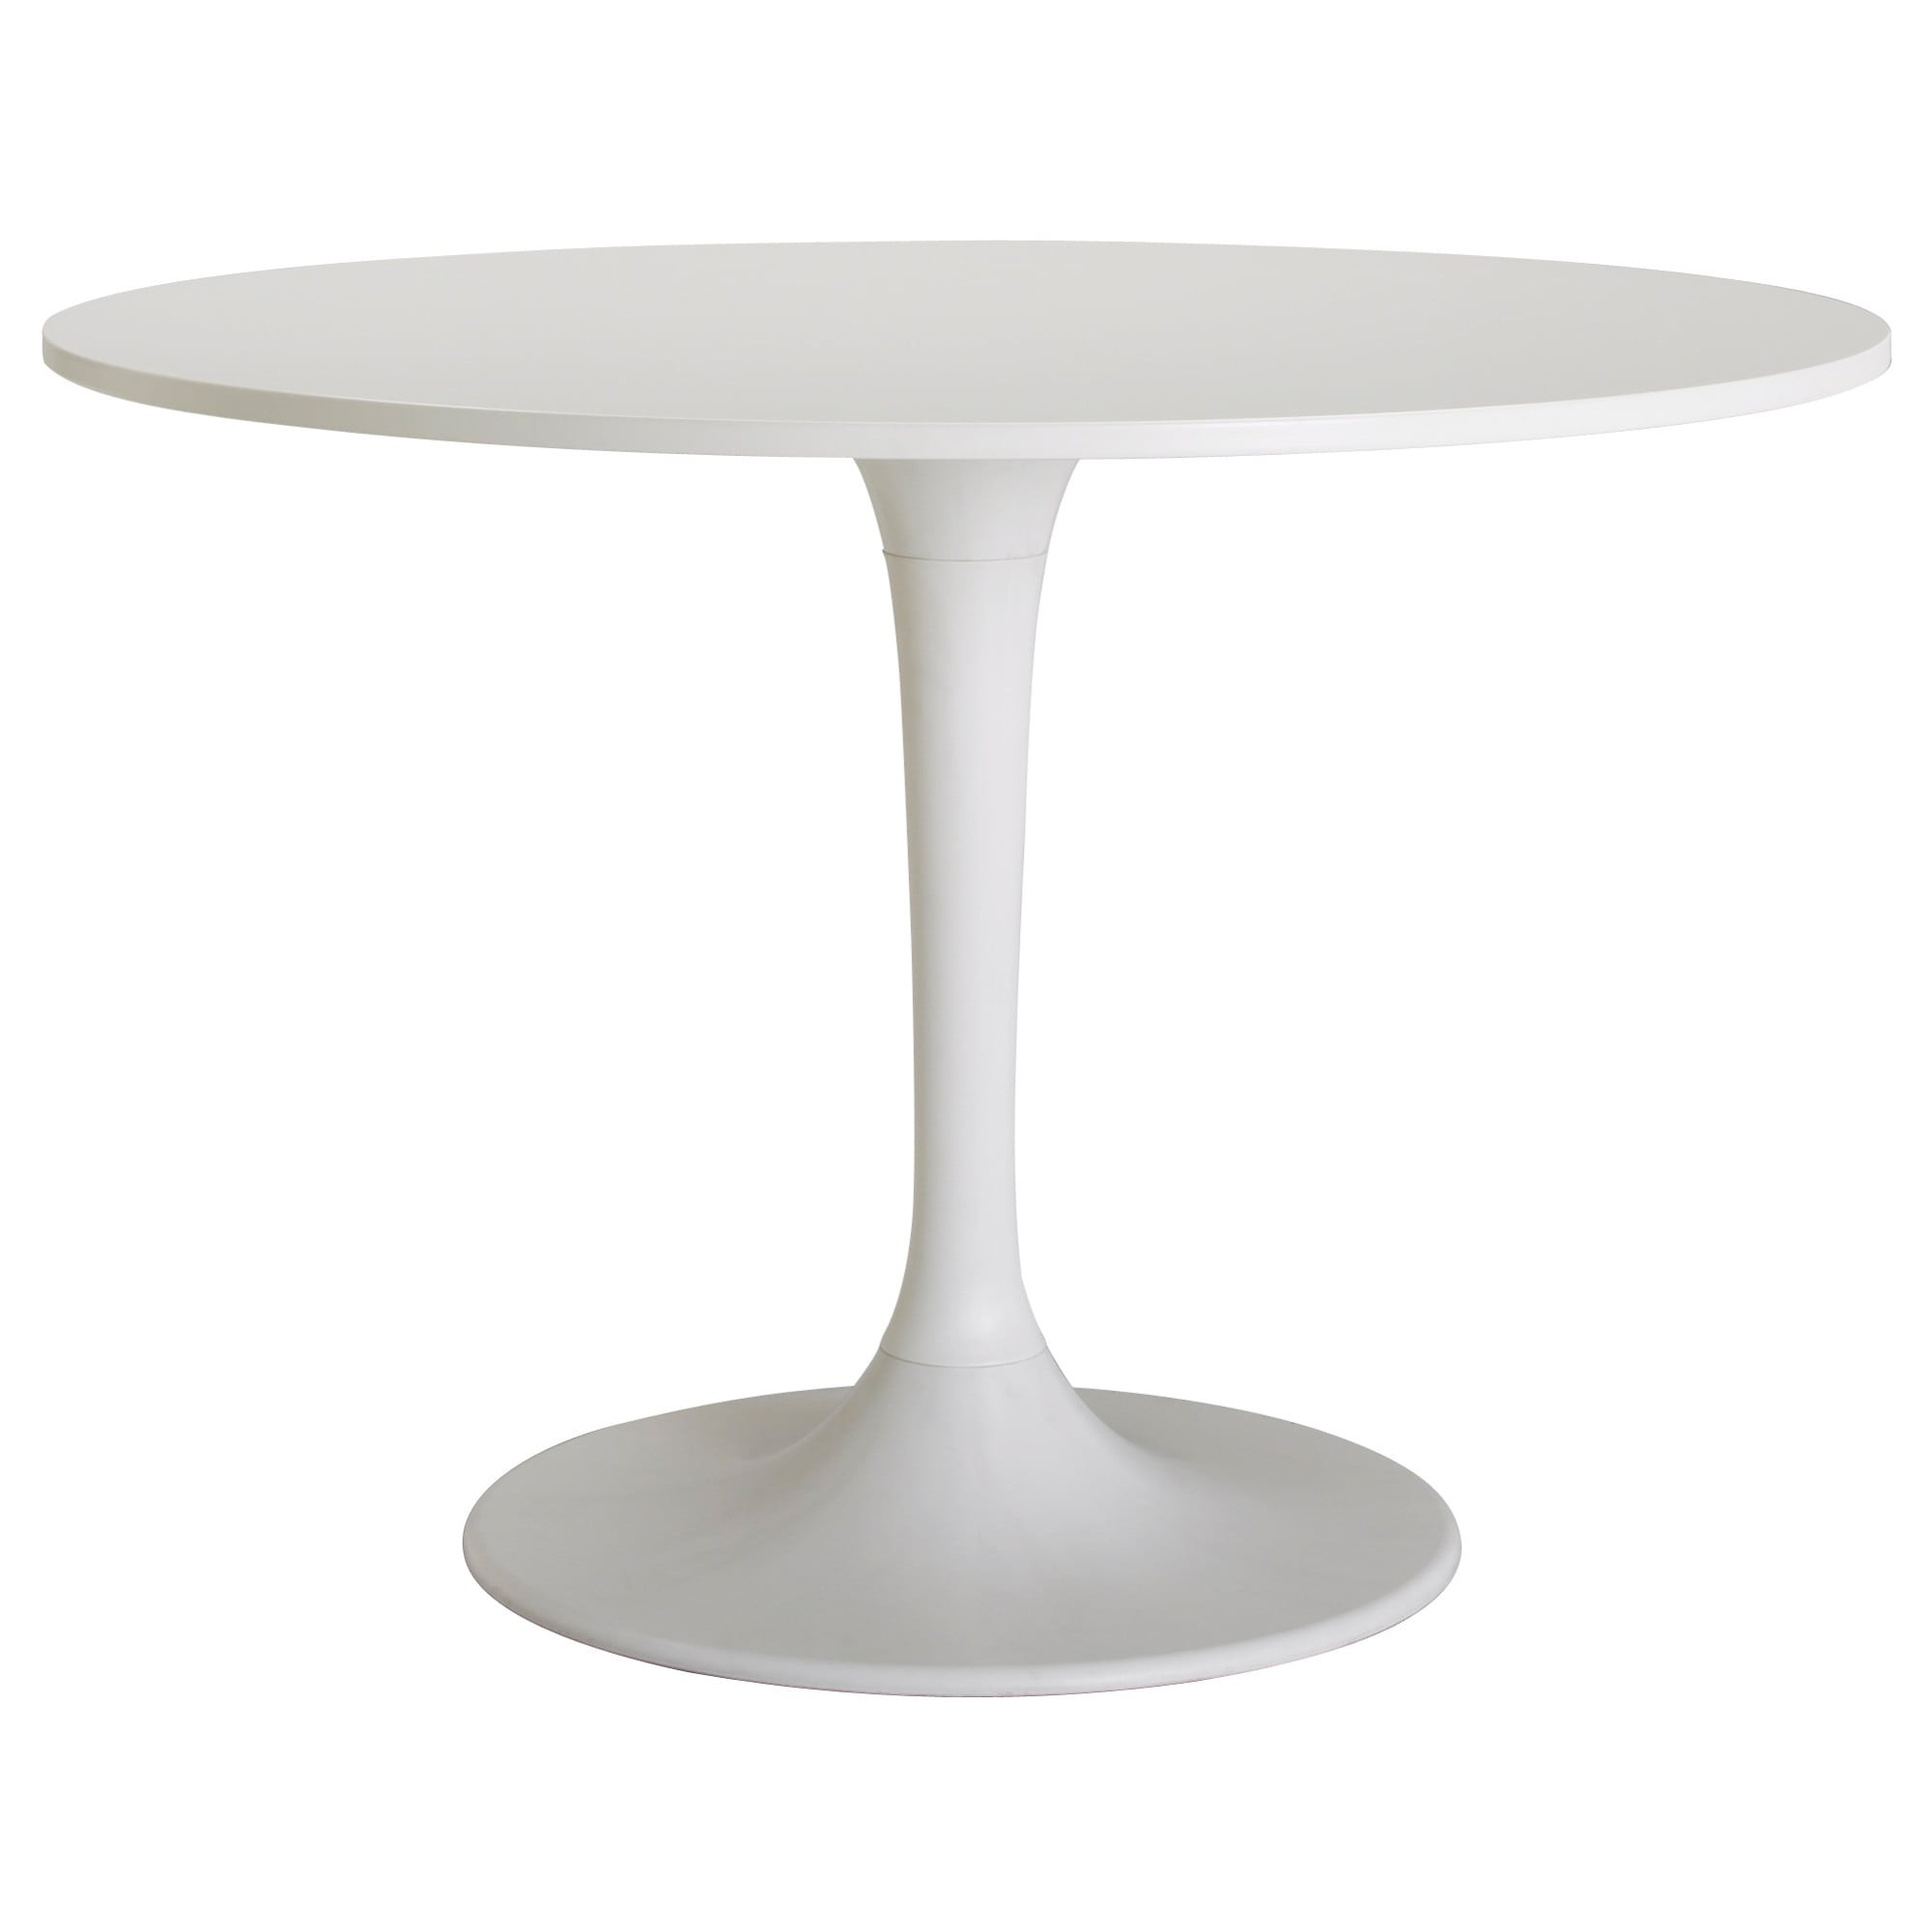 Best ideas about Ikea Round Dining Table . Save or Pin DOCKSTA Table White 105 cm IKEA Now.